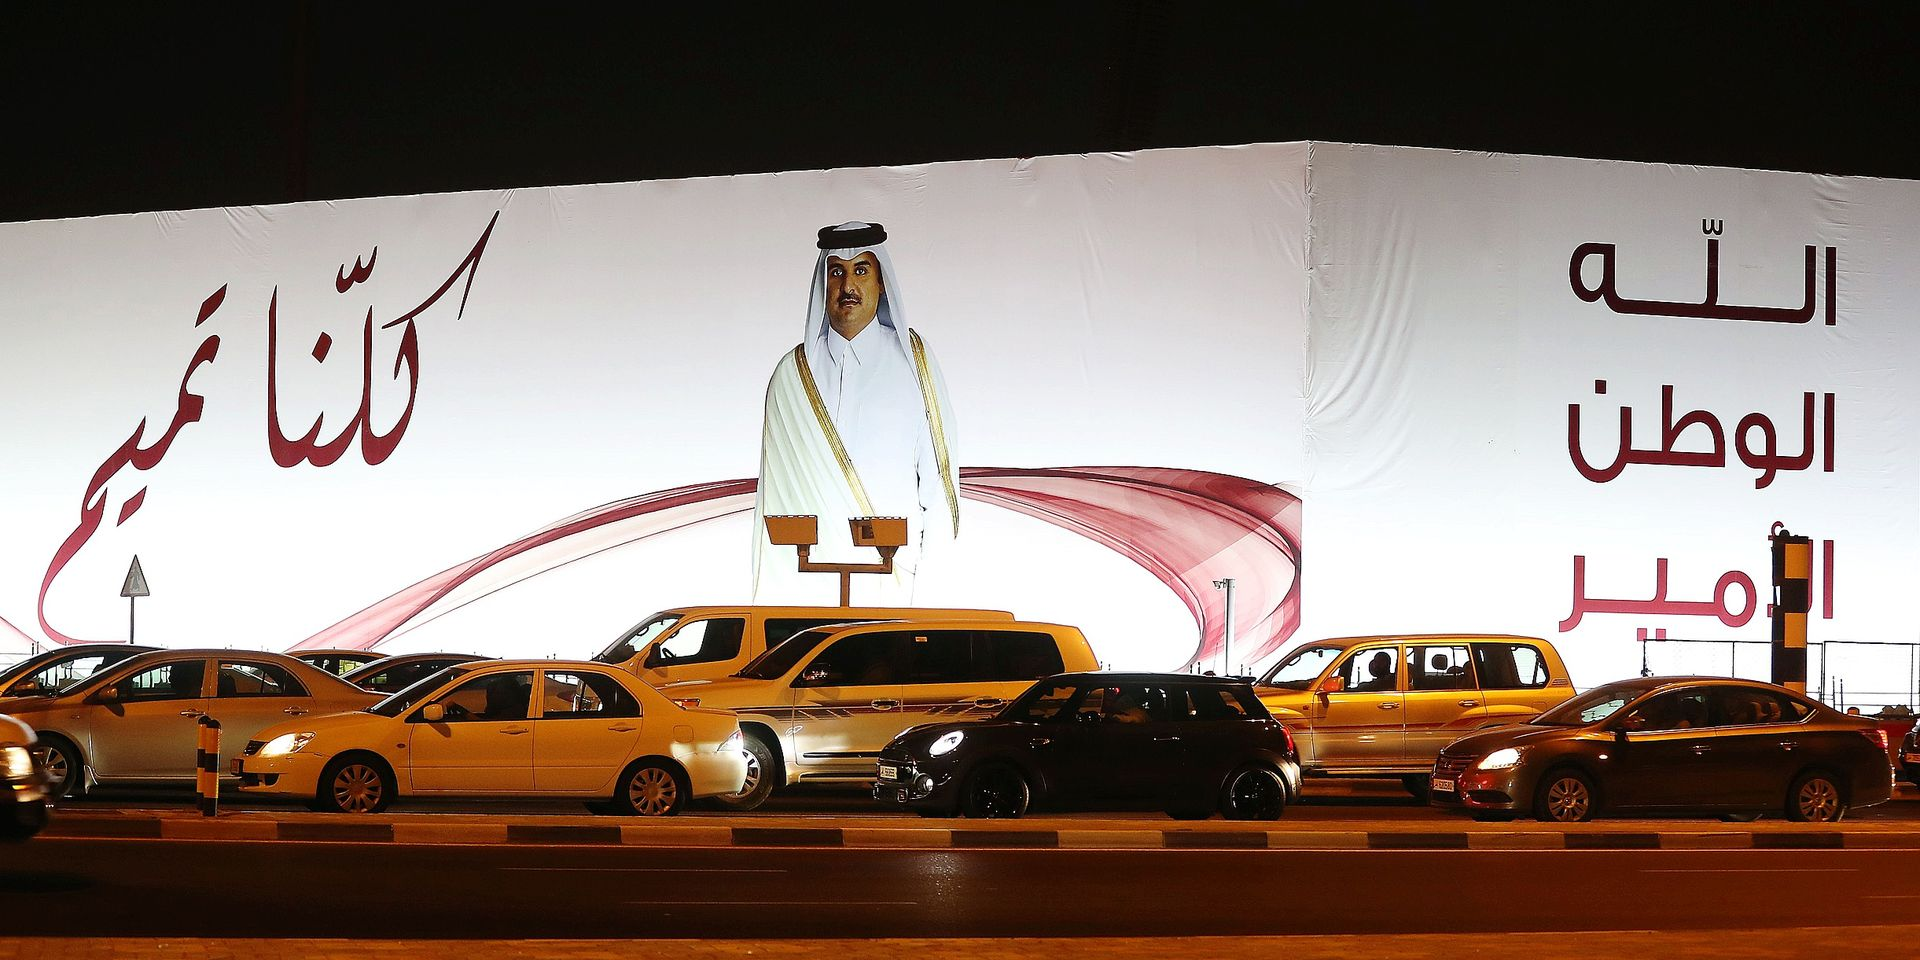 """(FILES) In this file photo taken on June 11, 2017 A general view taken on June 11, 2017 shows a portrait of Qatar's Emir Sheikh Tamim bin Hamad Al-Thani and text reading in Arabic: """"We are all Tamim"""" on a billboard outside the Qatar Sports club in Doha after the diplomatic crisis surrounding Qatar and the other Gulf countries spilled from social media to more traditional forms of media -- all the way back to billboards. The year-old acrimonious dispute between Qatar and its neighbours is forging a """"new"""" Gulf, potentially transforming what was a stable region of the Arab world, experts warn. / AFP PHOTO / Karim JAAFAR"""